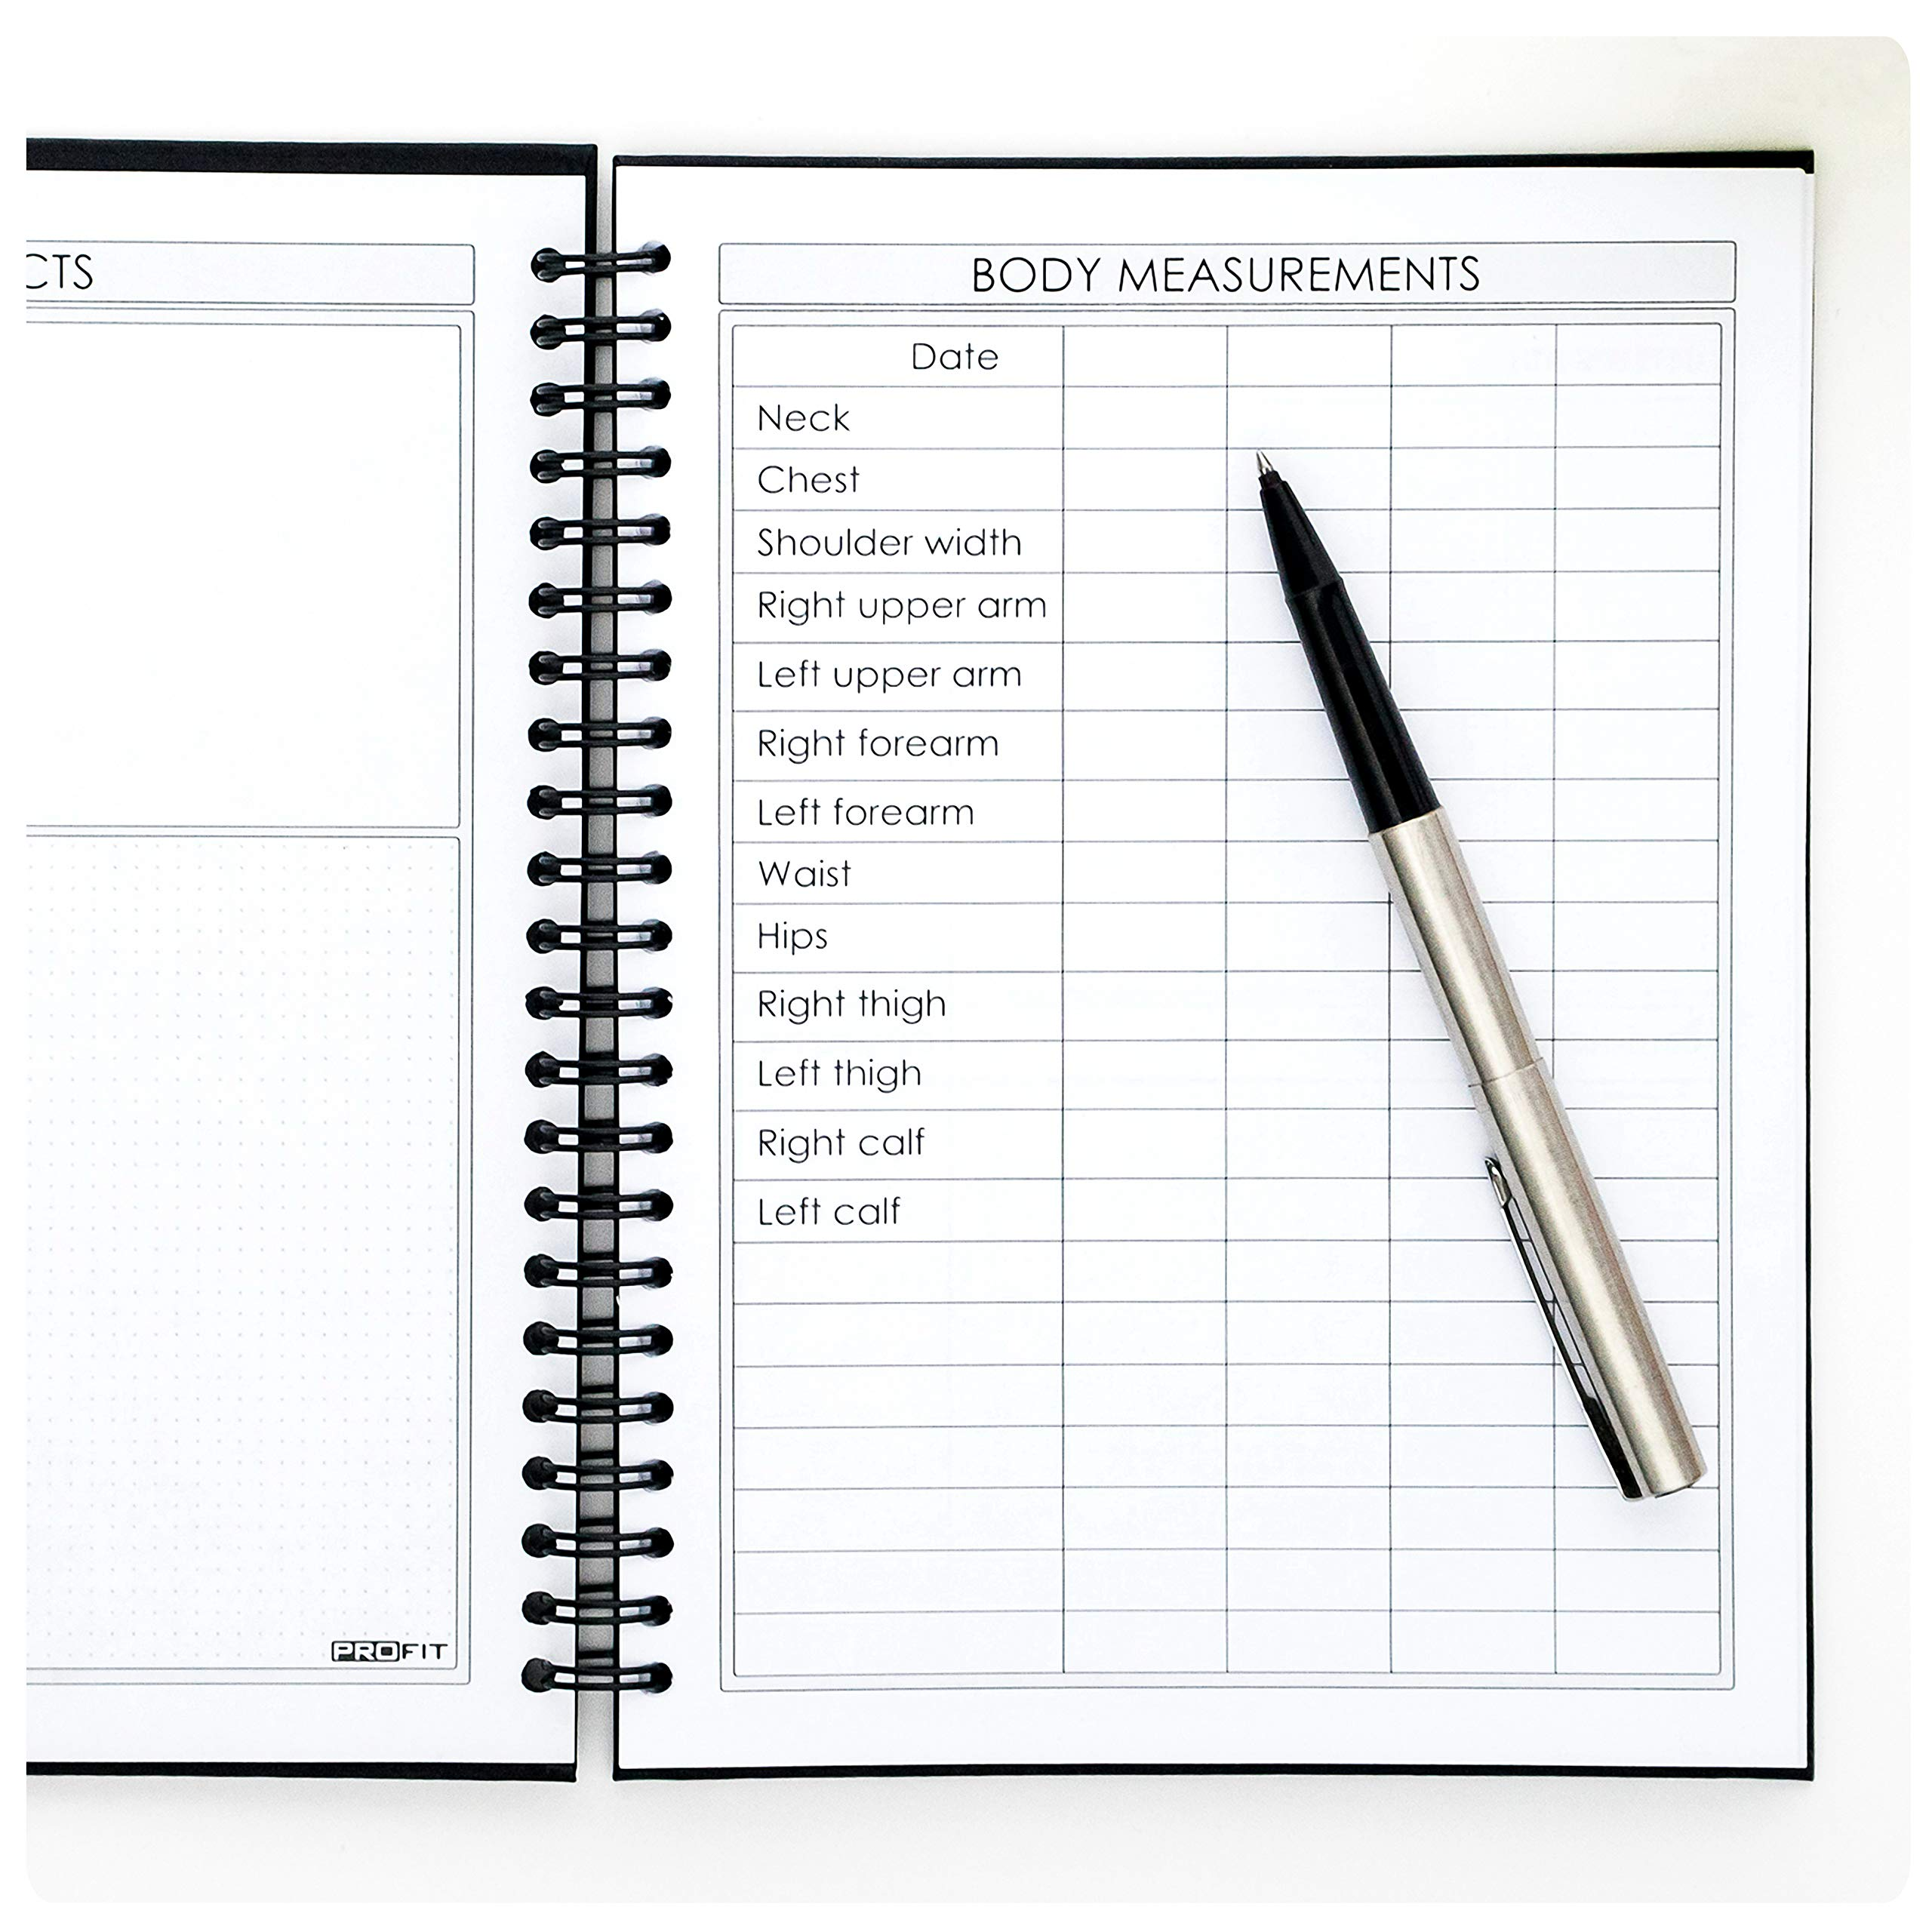 Fitness and Food Journal by Profit - Workout Log Book